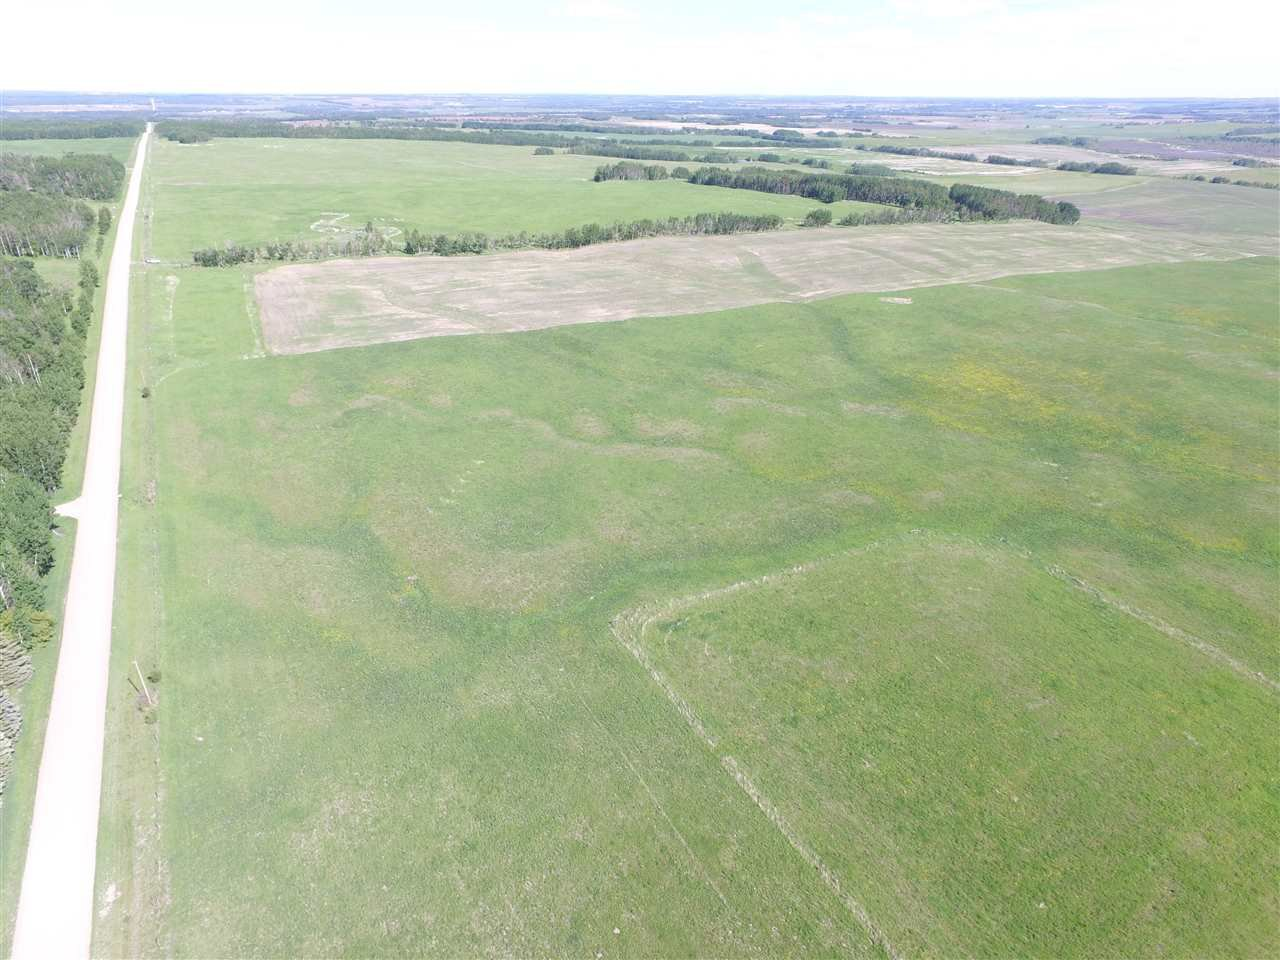 Main Photo: Twp Rd 443 and Rge Rd 282: Rural Ponoka County Rural Land/Vacant Lot for sale : MLS®# E4220726